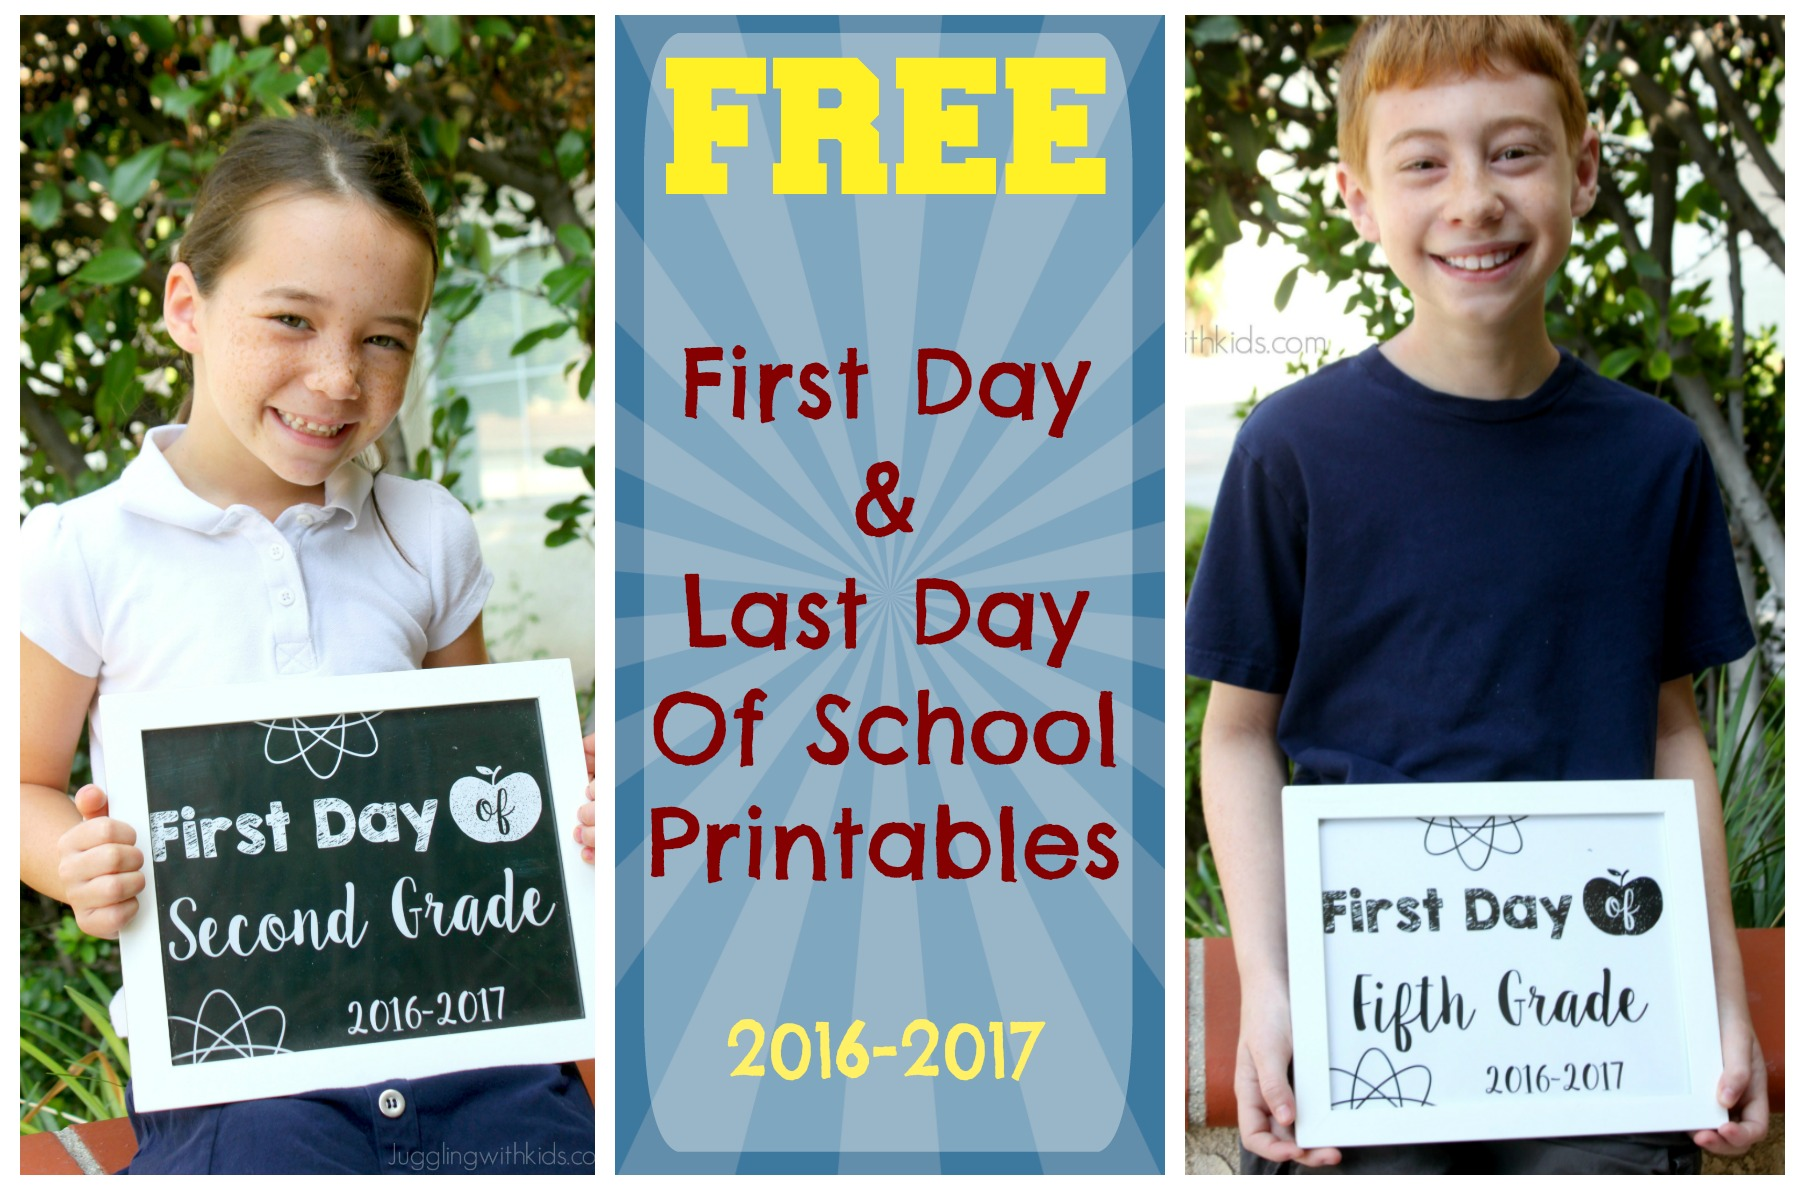 First Day Amp Last Day Of School Sign Printables Juggling With Kids